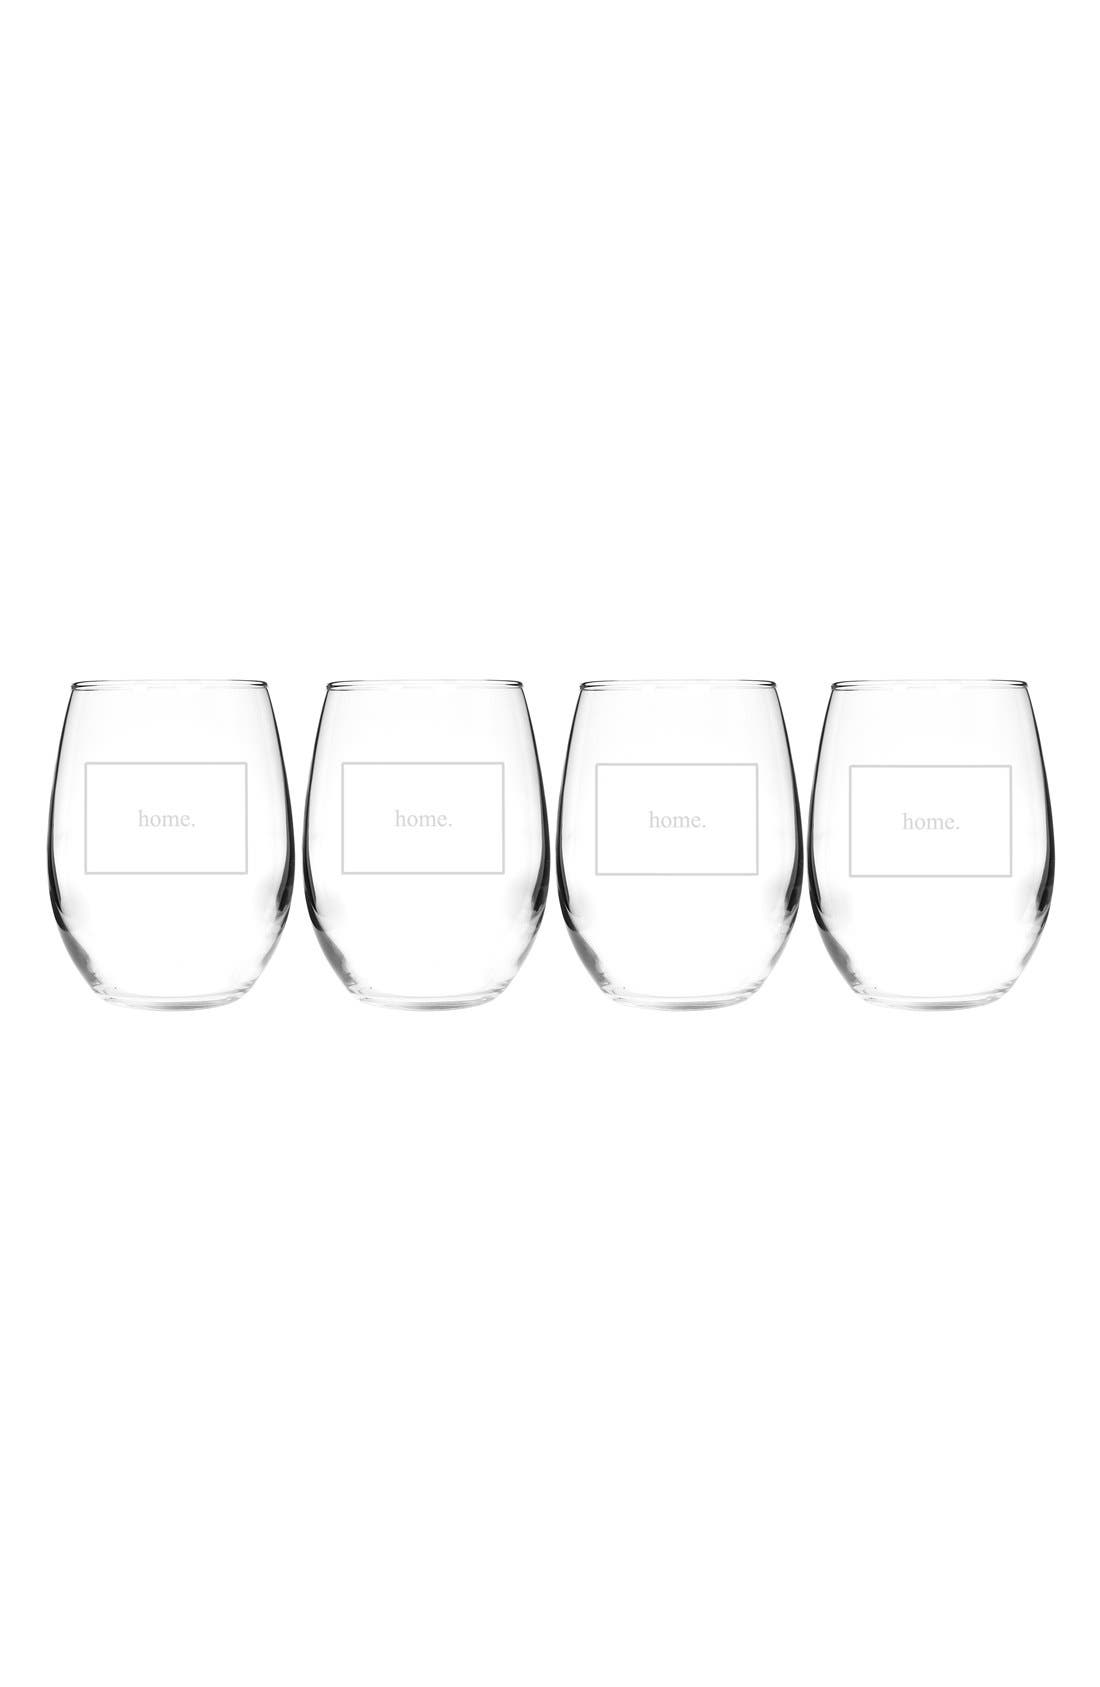 Home State Set of 4 Stemless Wine Glasses,                             Main thumbnail 50, color,